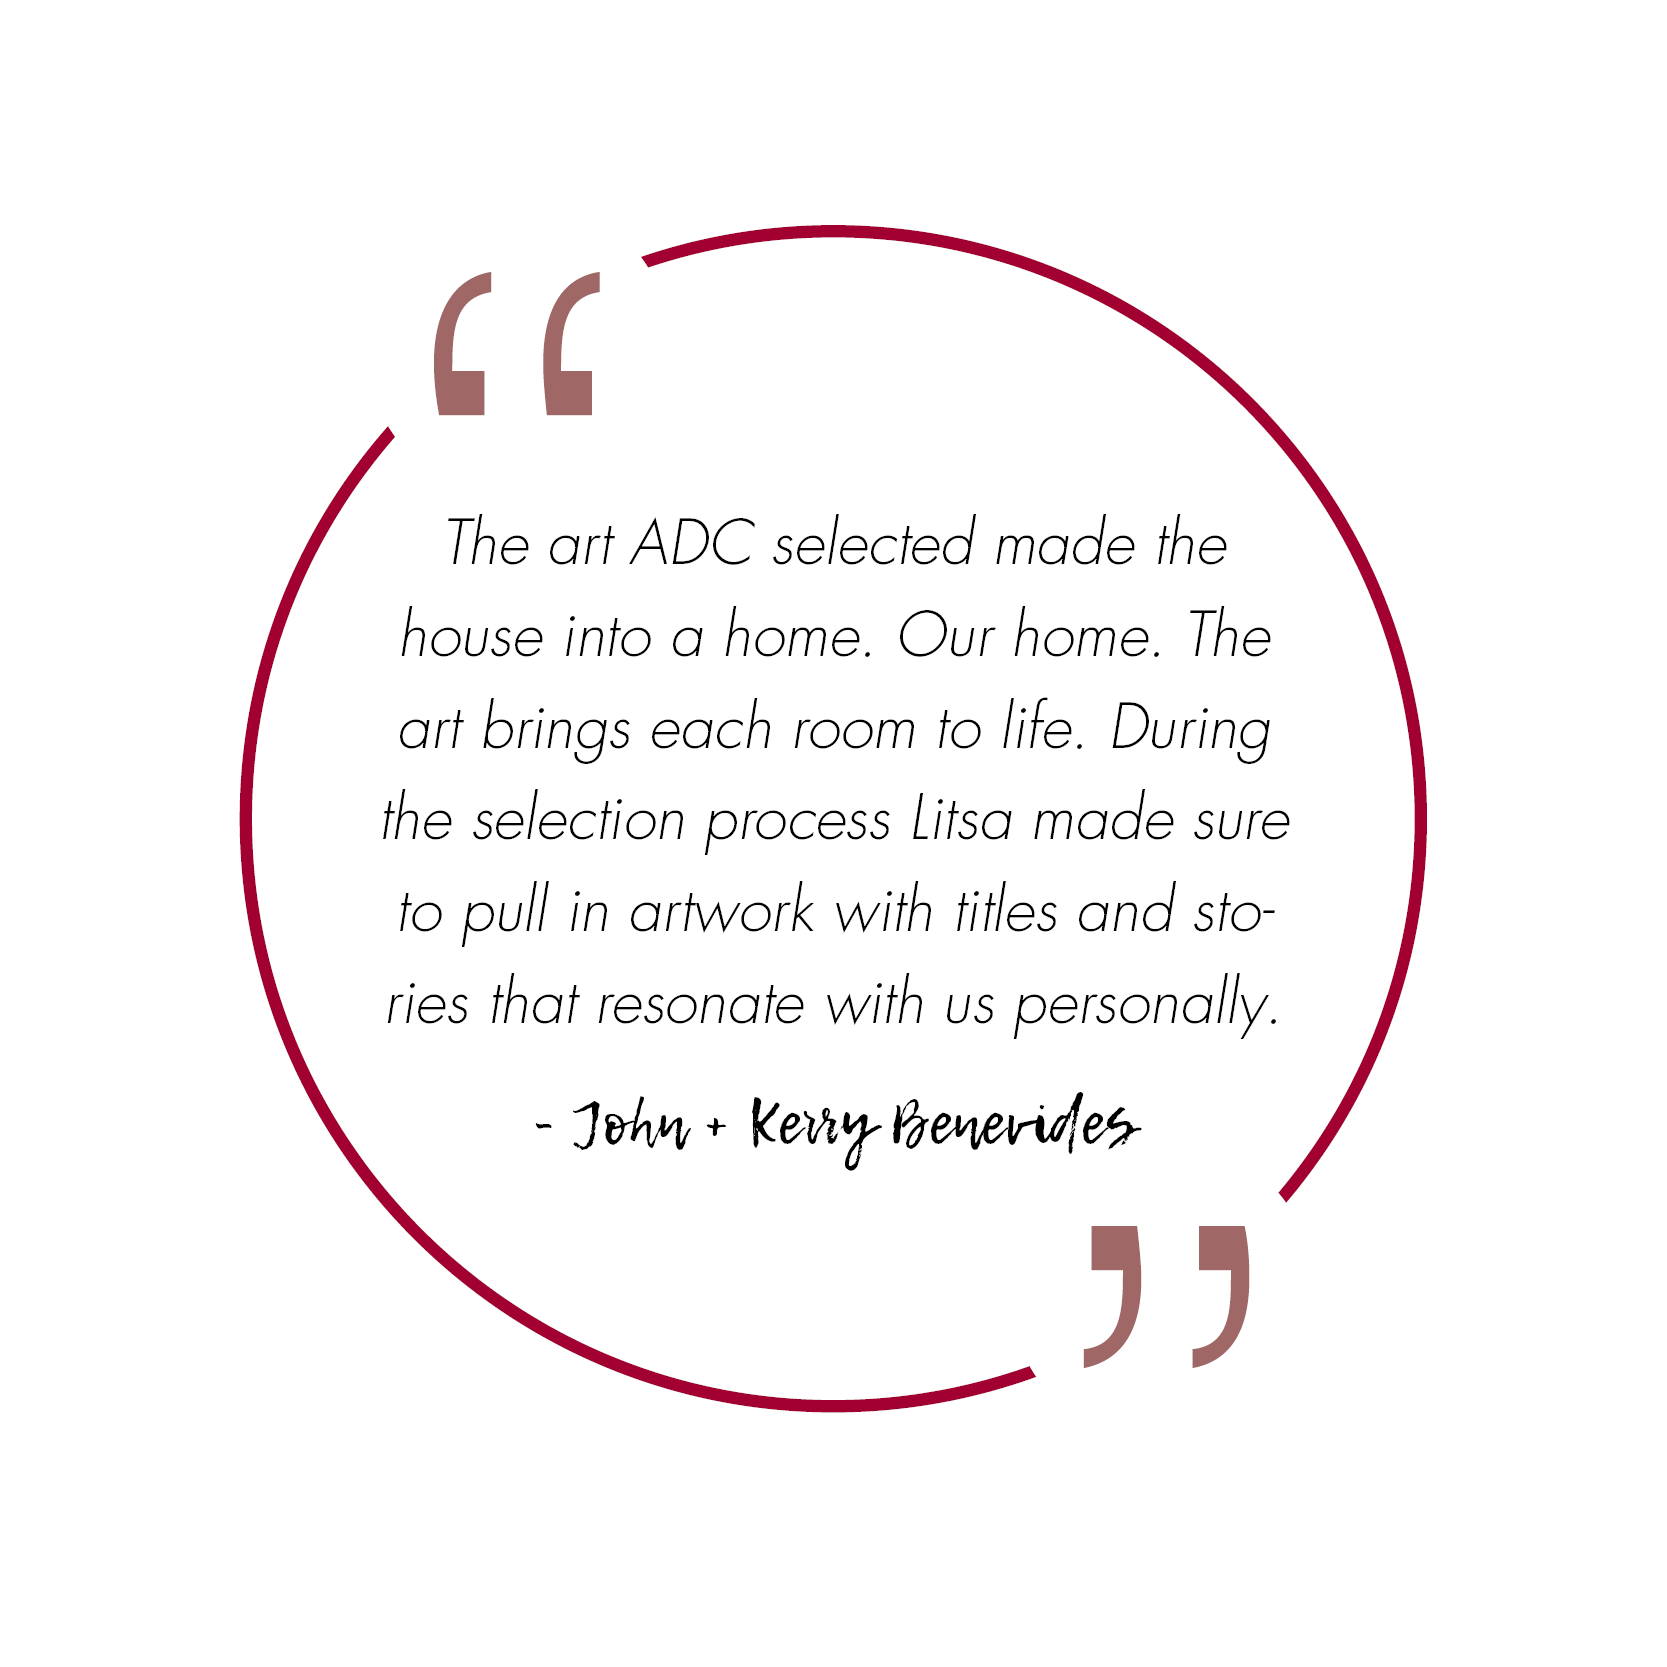 a quote from john and Kerry Benevides about working with art design consultants on curating their art collection